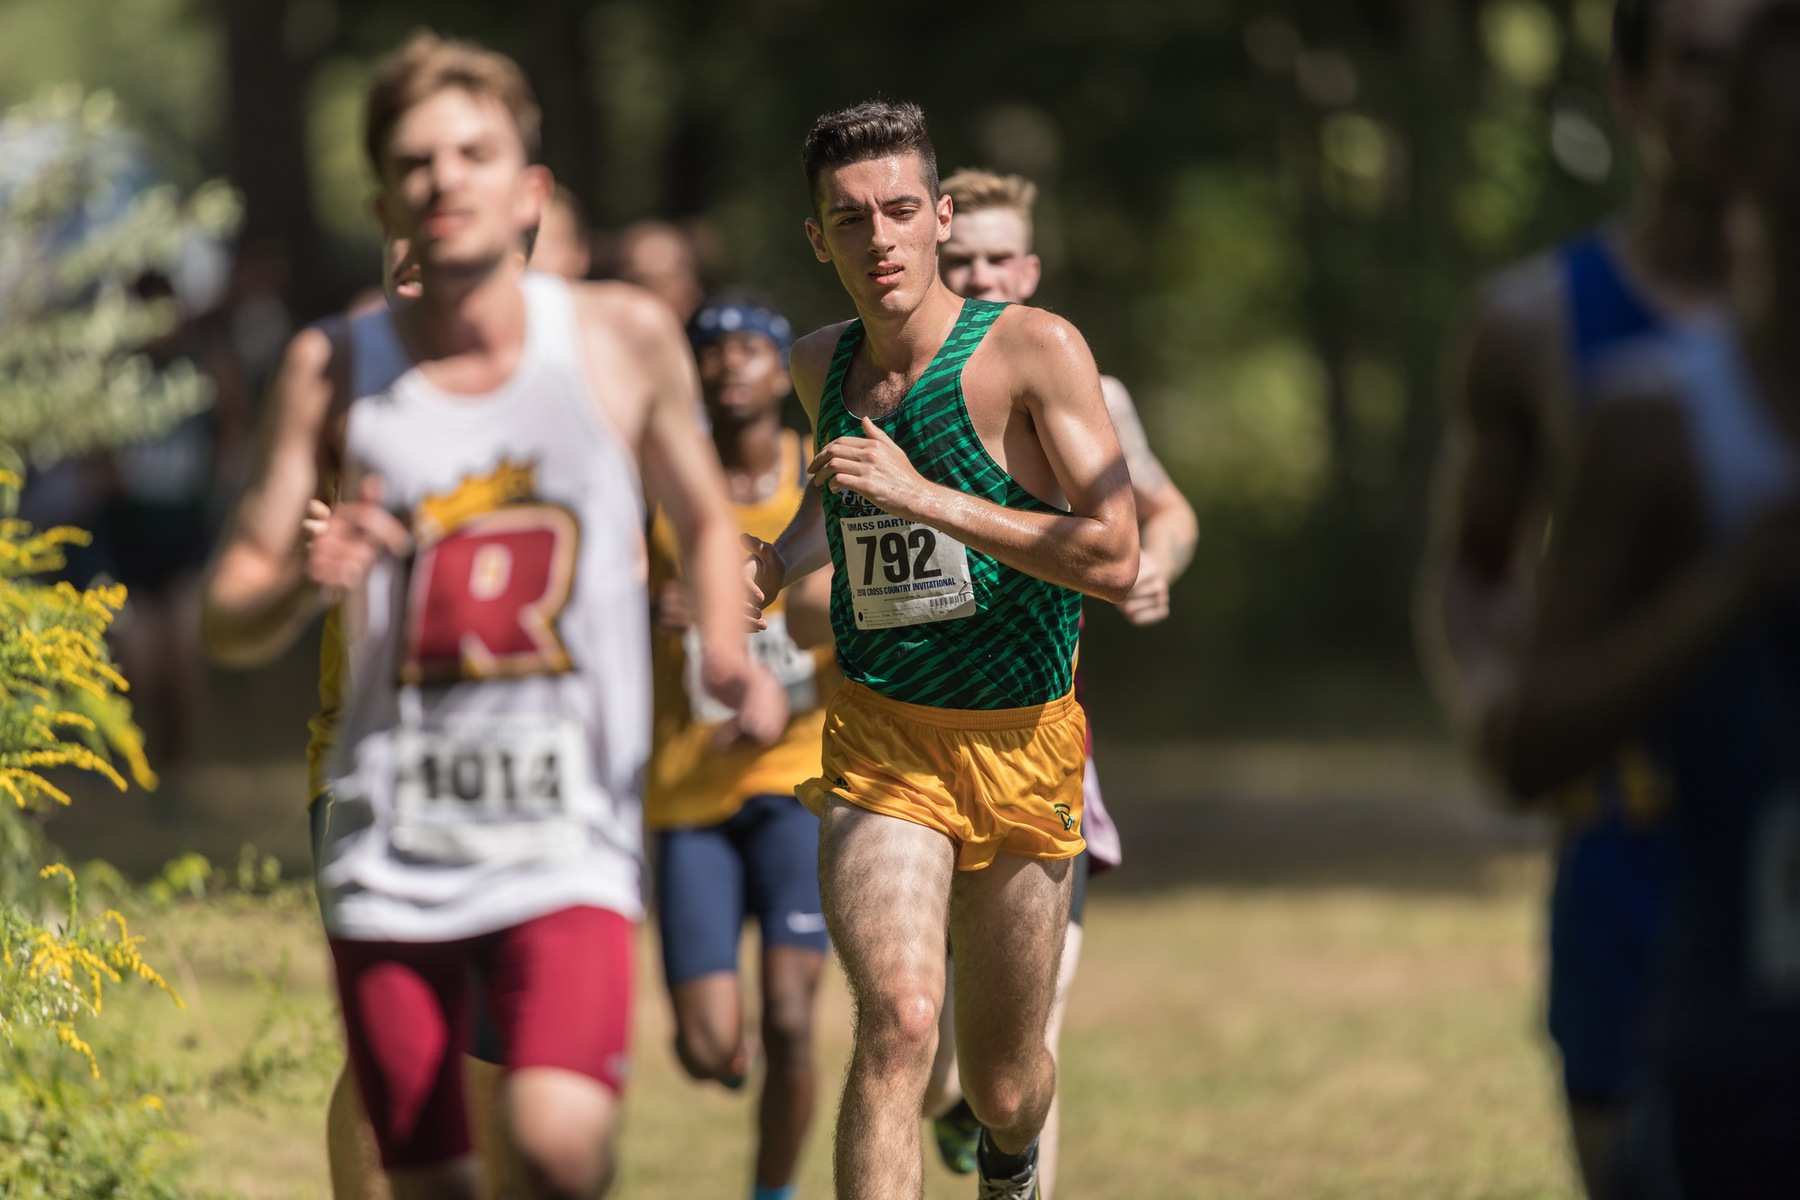 Falcons Compete At All-New England's & James Early Memorial Invite